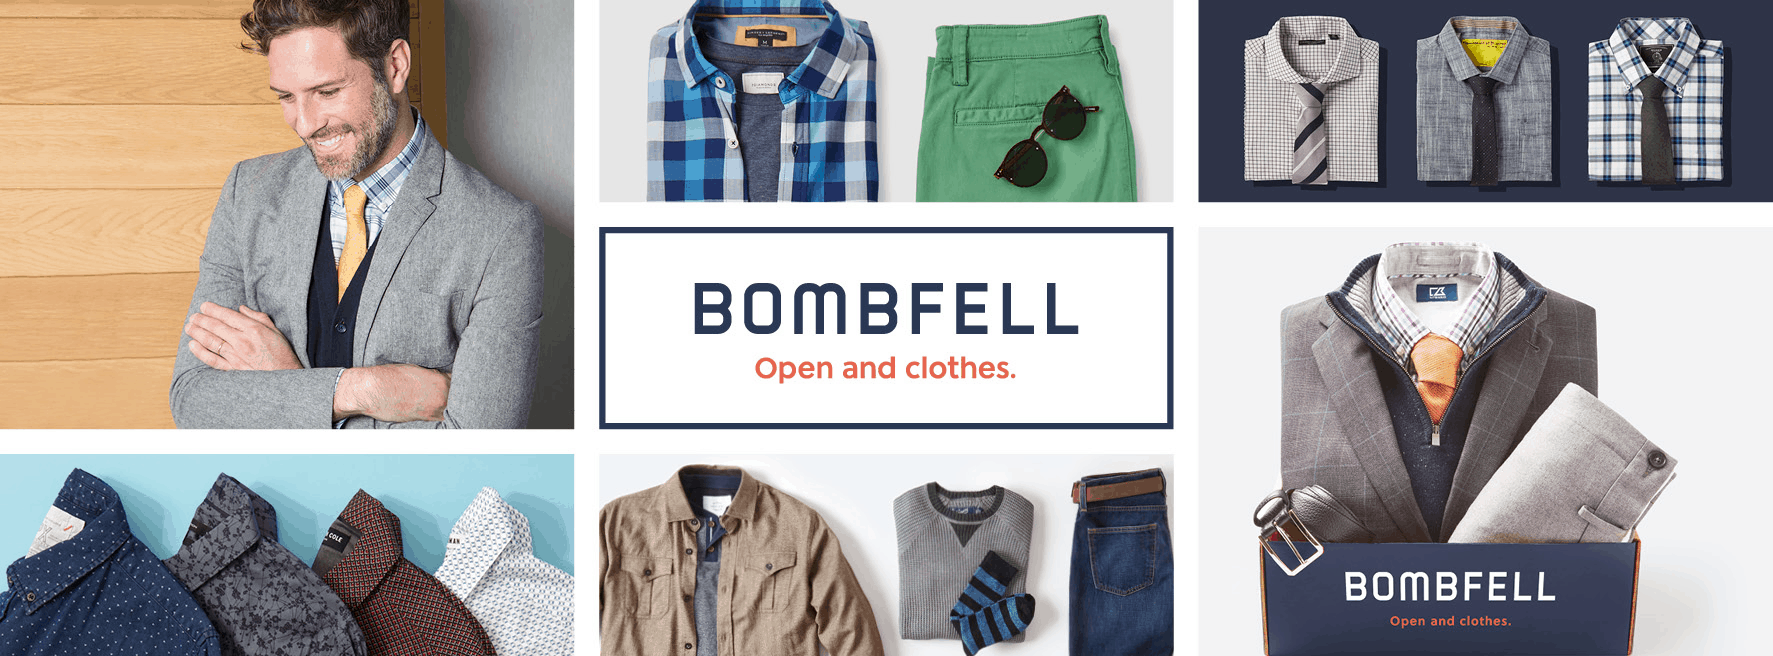 Bombfell Black Friday 2019 Deal: Save $30 on First Purchase!